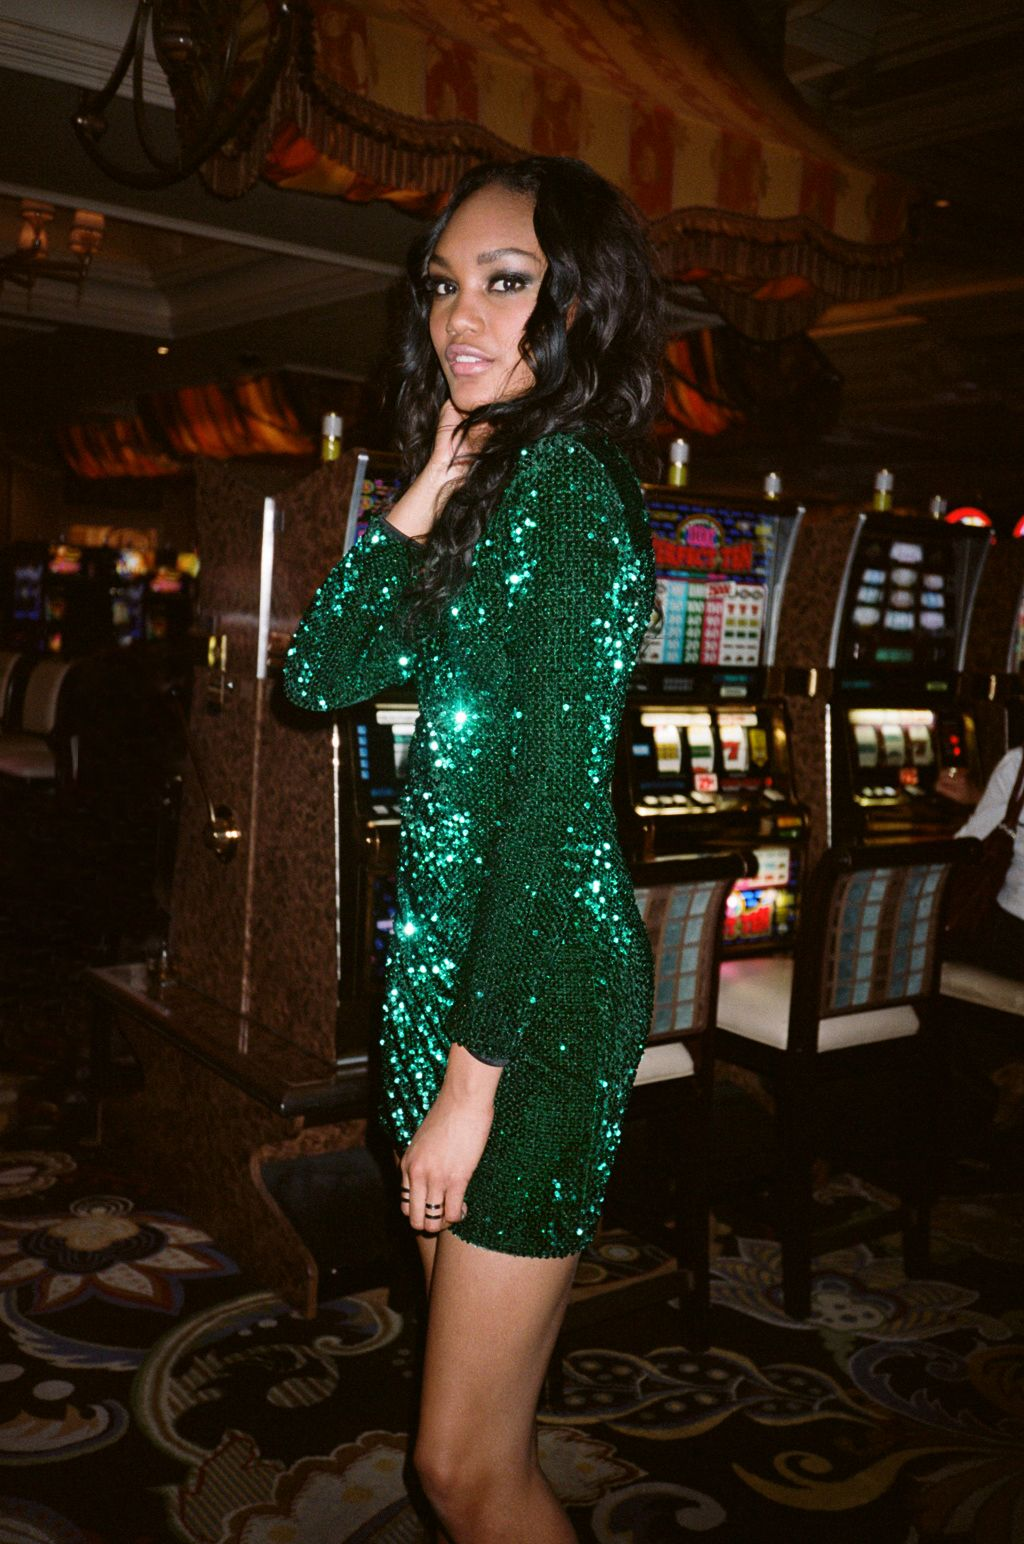 Fremont plaid shirt glitter green party dress and emerald green